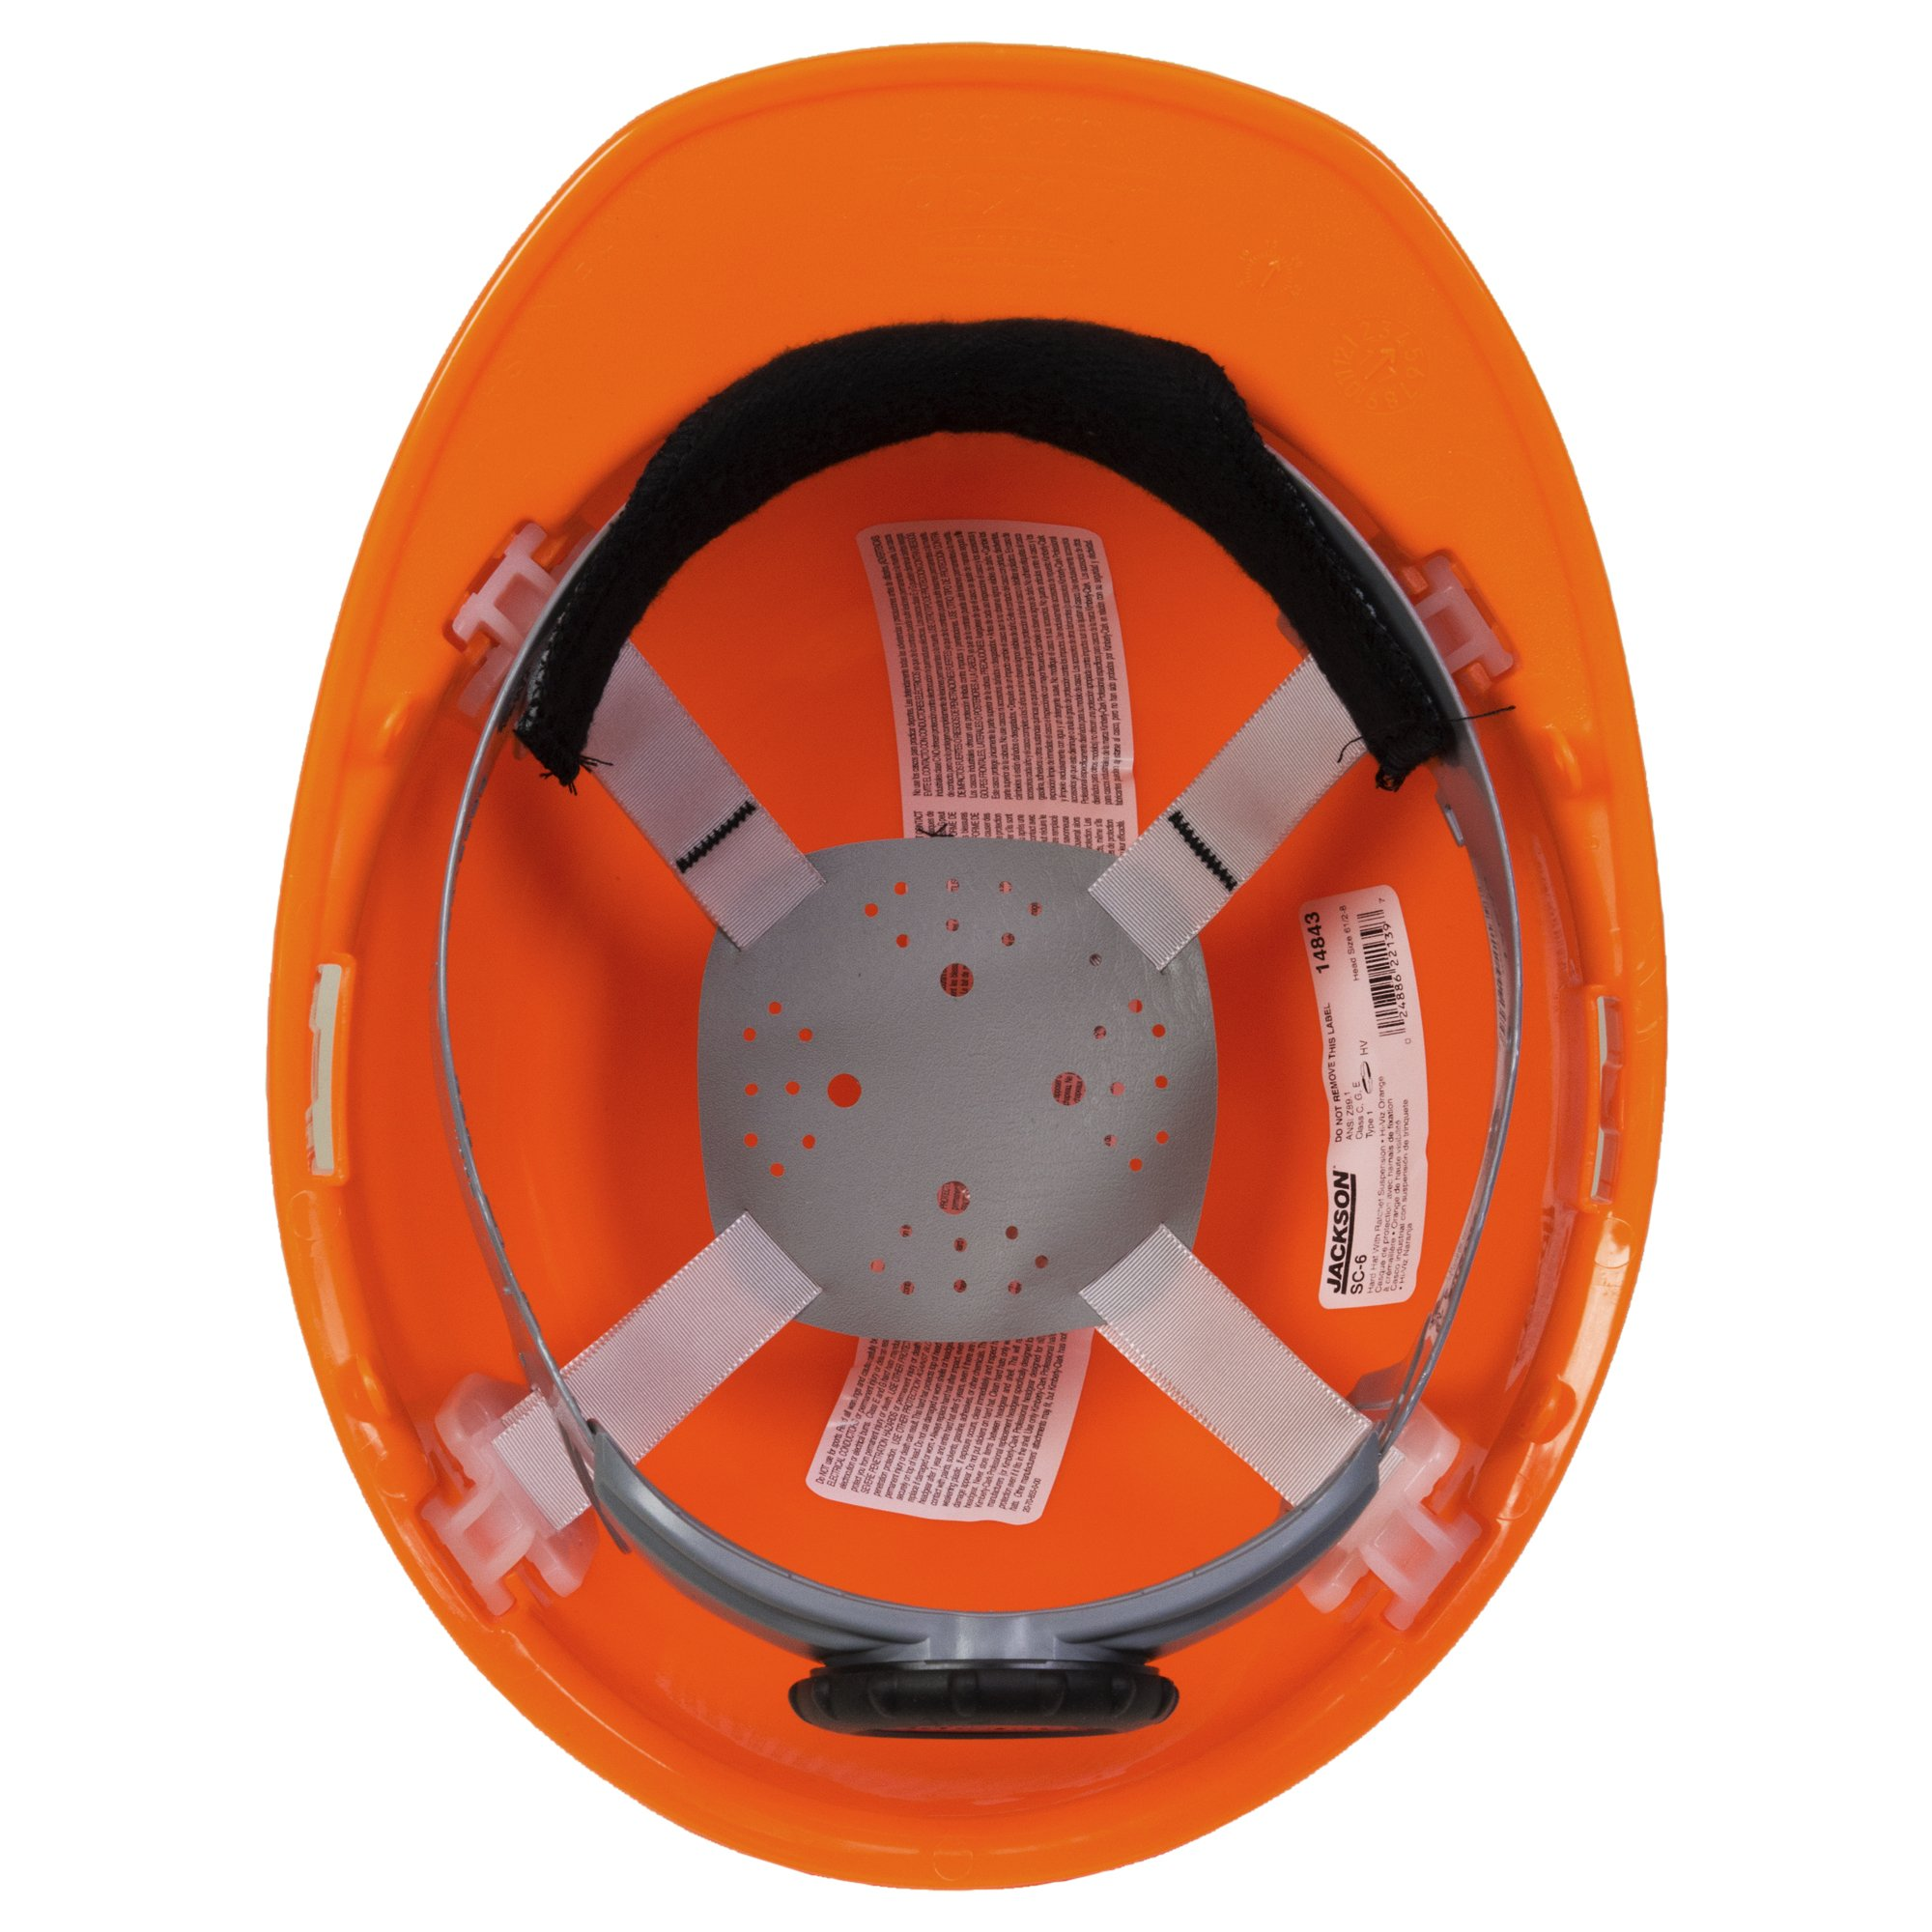 Jackson Safety SC-6 Hard Hat (14839), 4-Point Ratchet Suspension, Smooth Dome, Meets ANSI, Orange, 12 / Case by Jackson Safety (Image #2)